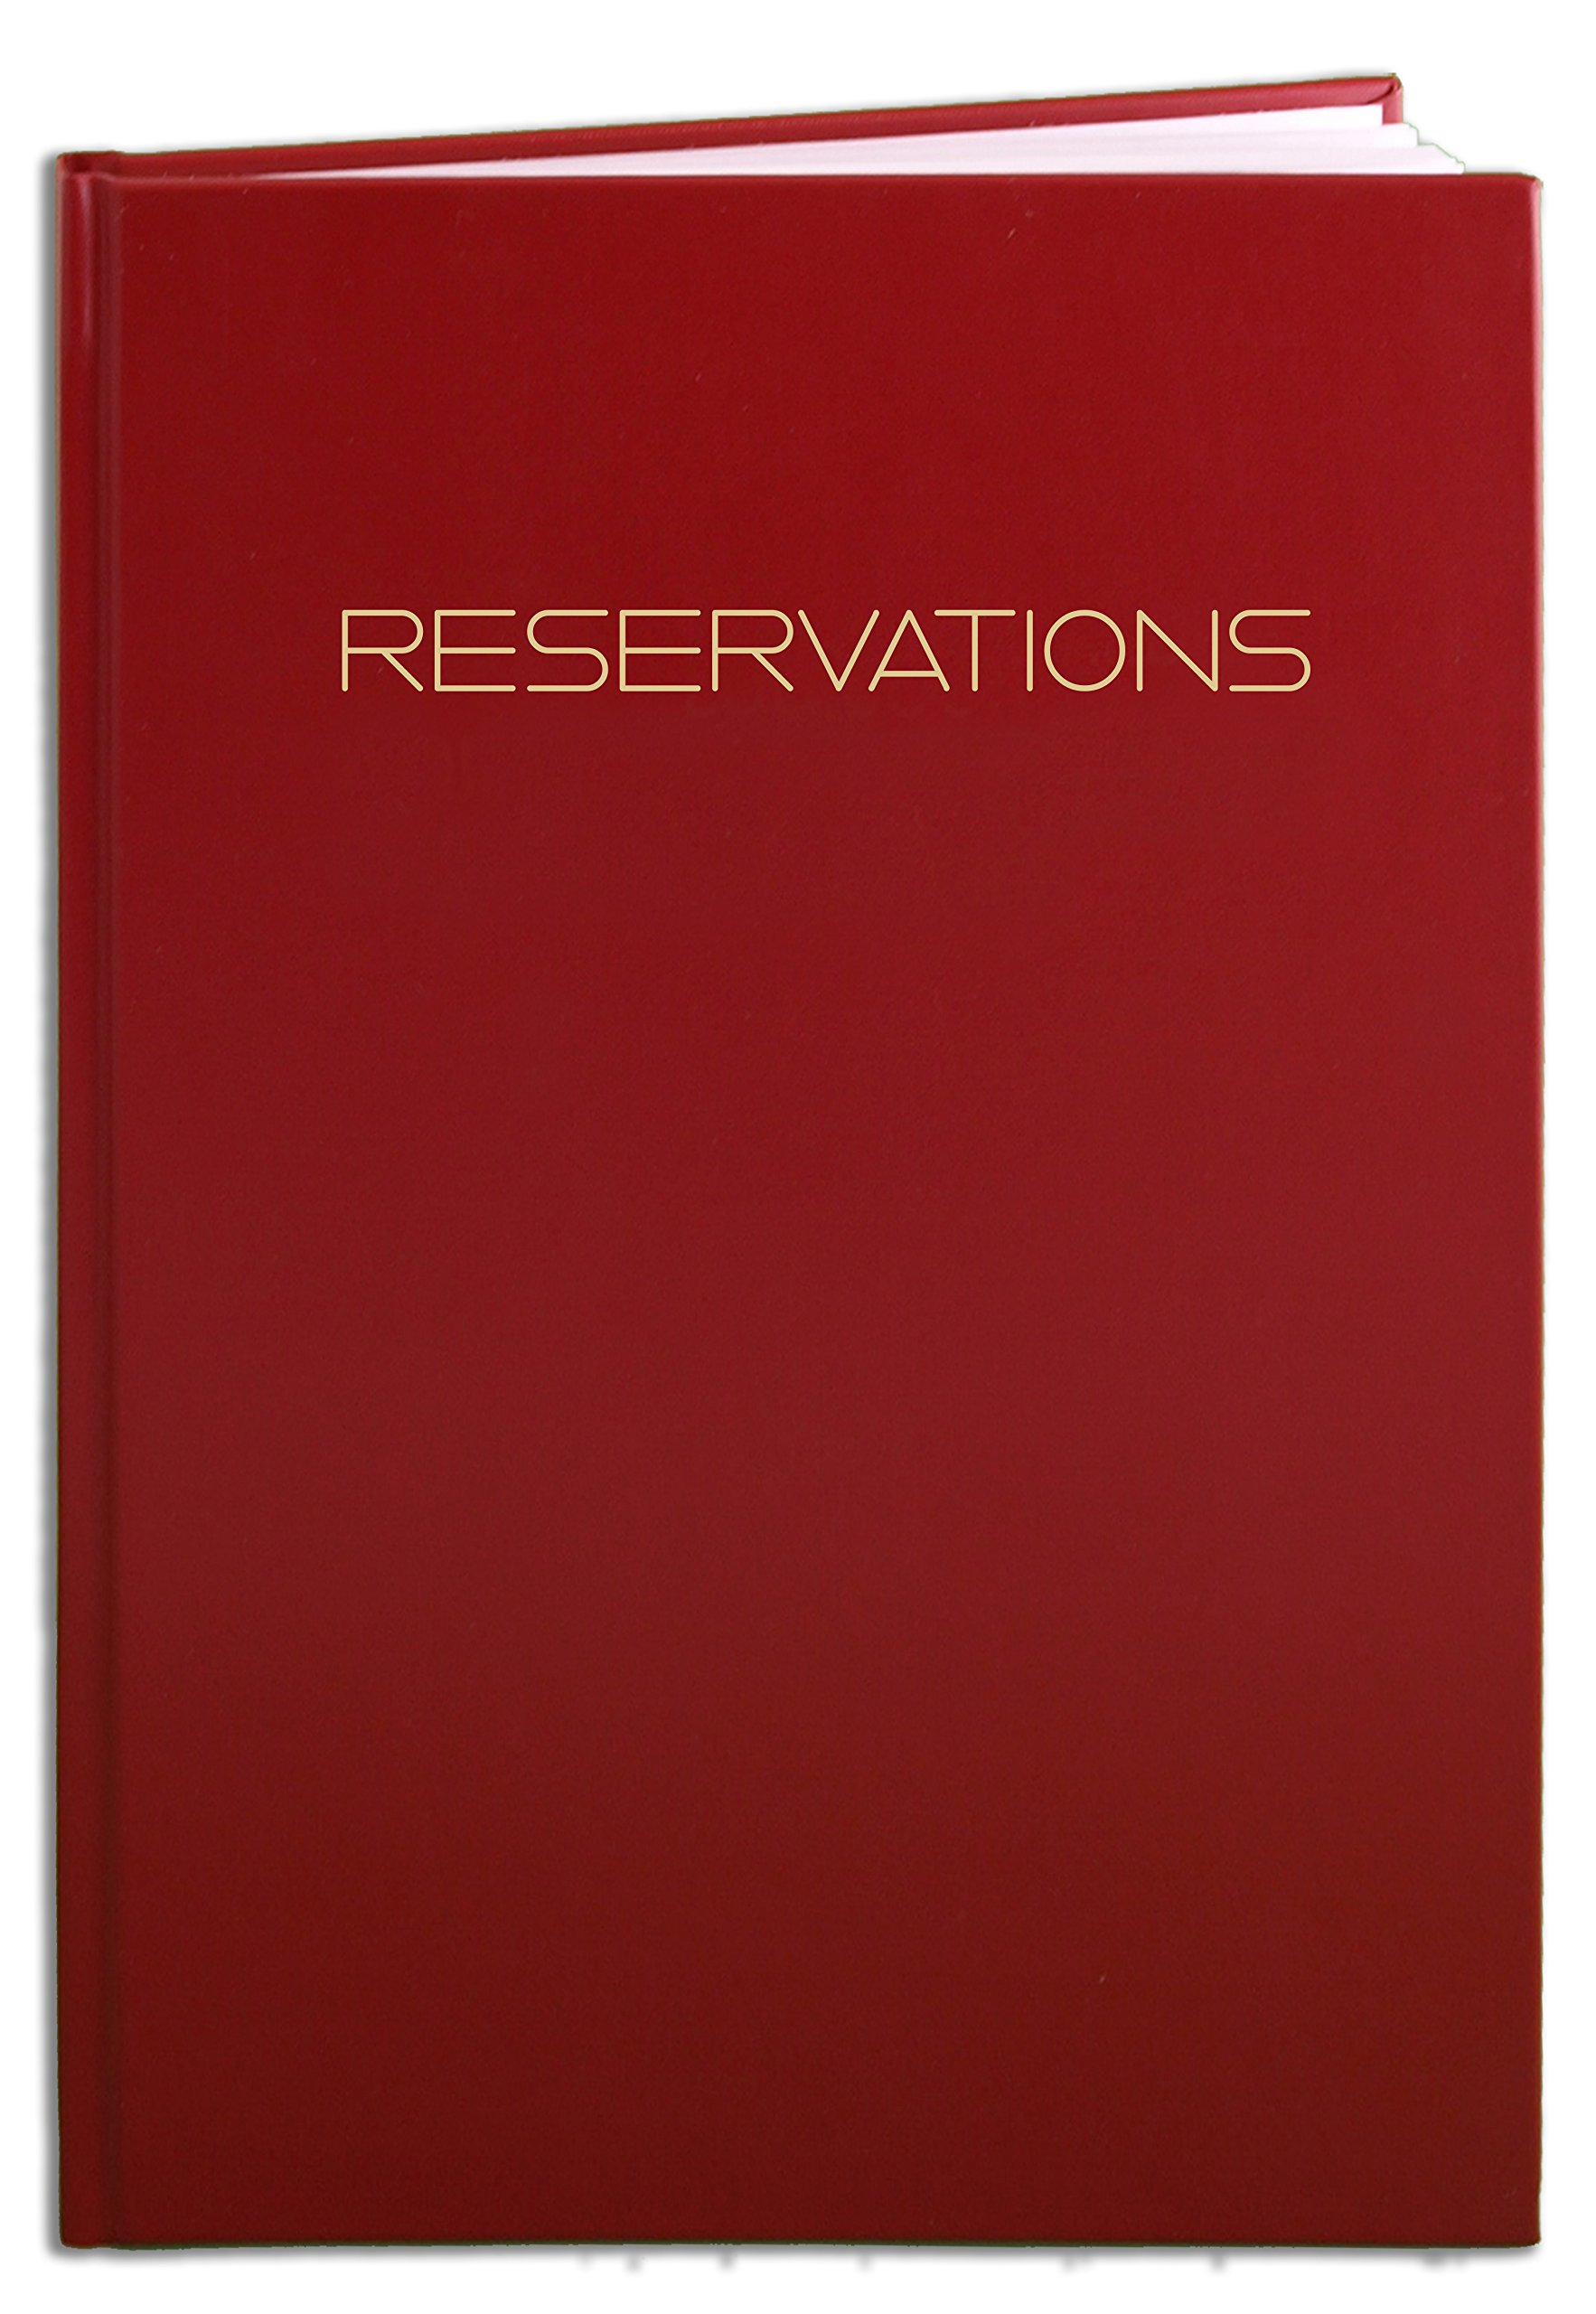 BookFactory Reservations Book, Restaurant Reservation Book, 365 Day Table Reservations, Dinner Reservations, 408 Pages, 8 7/8'' x 13 1/2'' Red Imitation Leather, Smyth Sewn Hardbound (LOG-408-OCS-A-LRT7